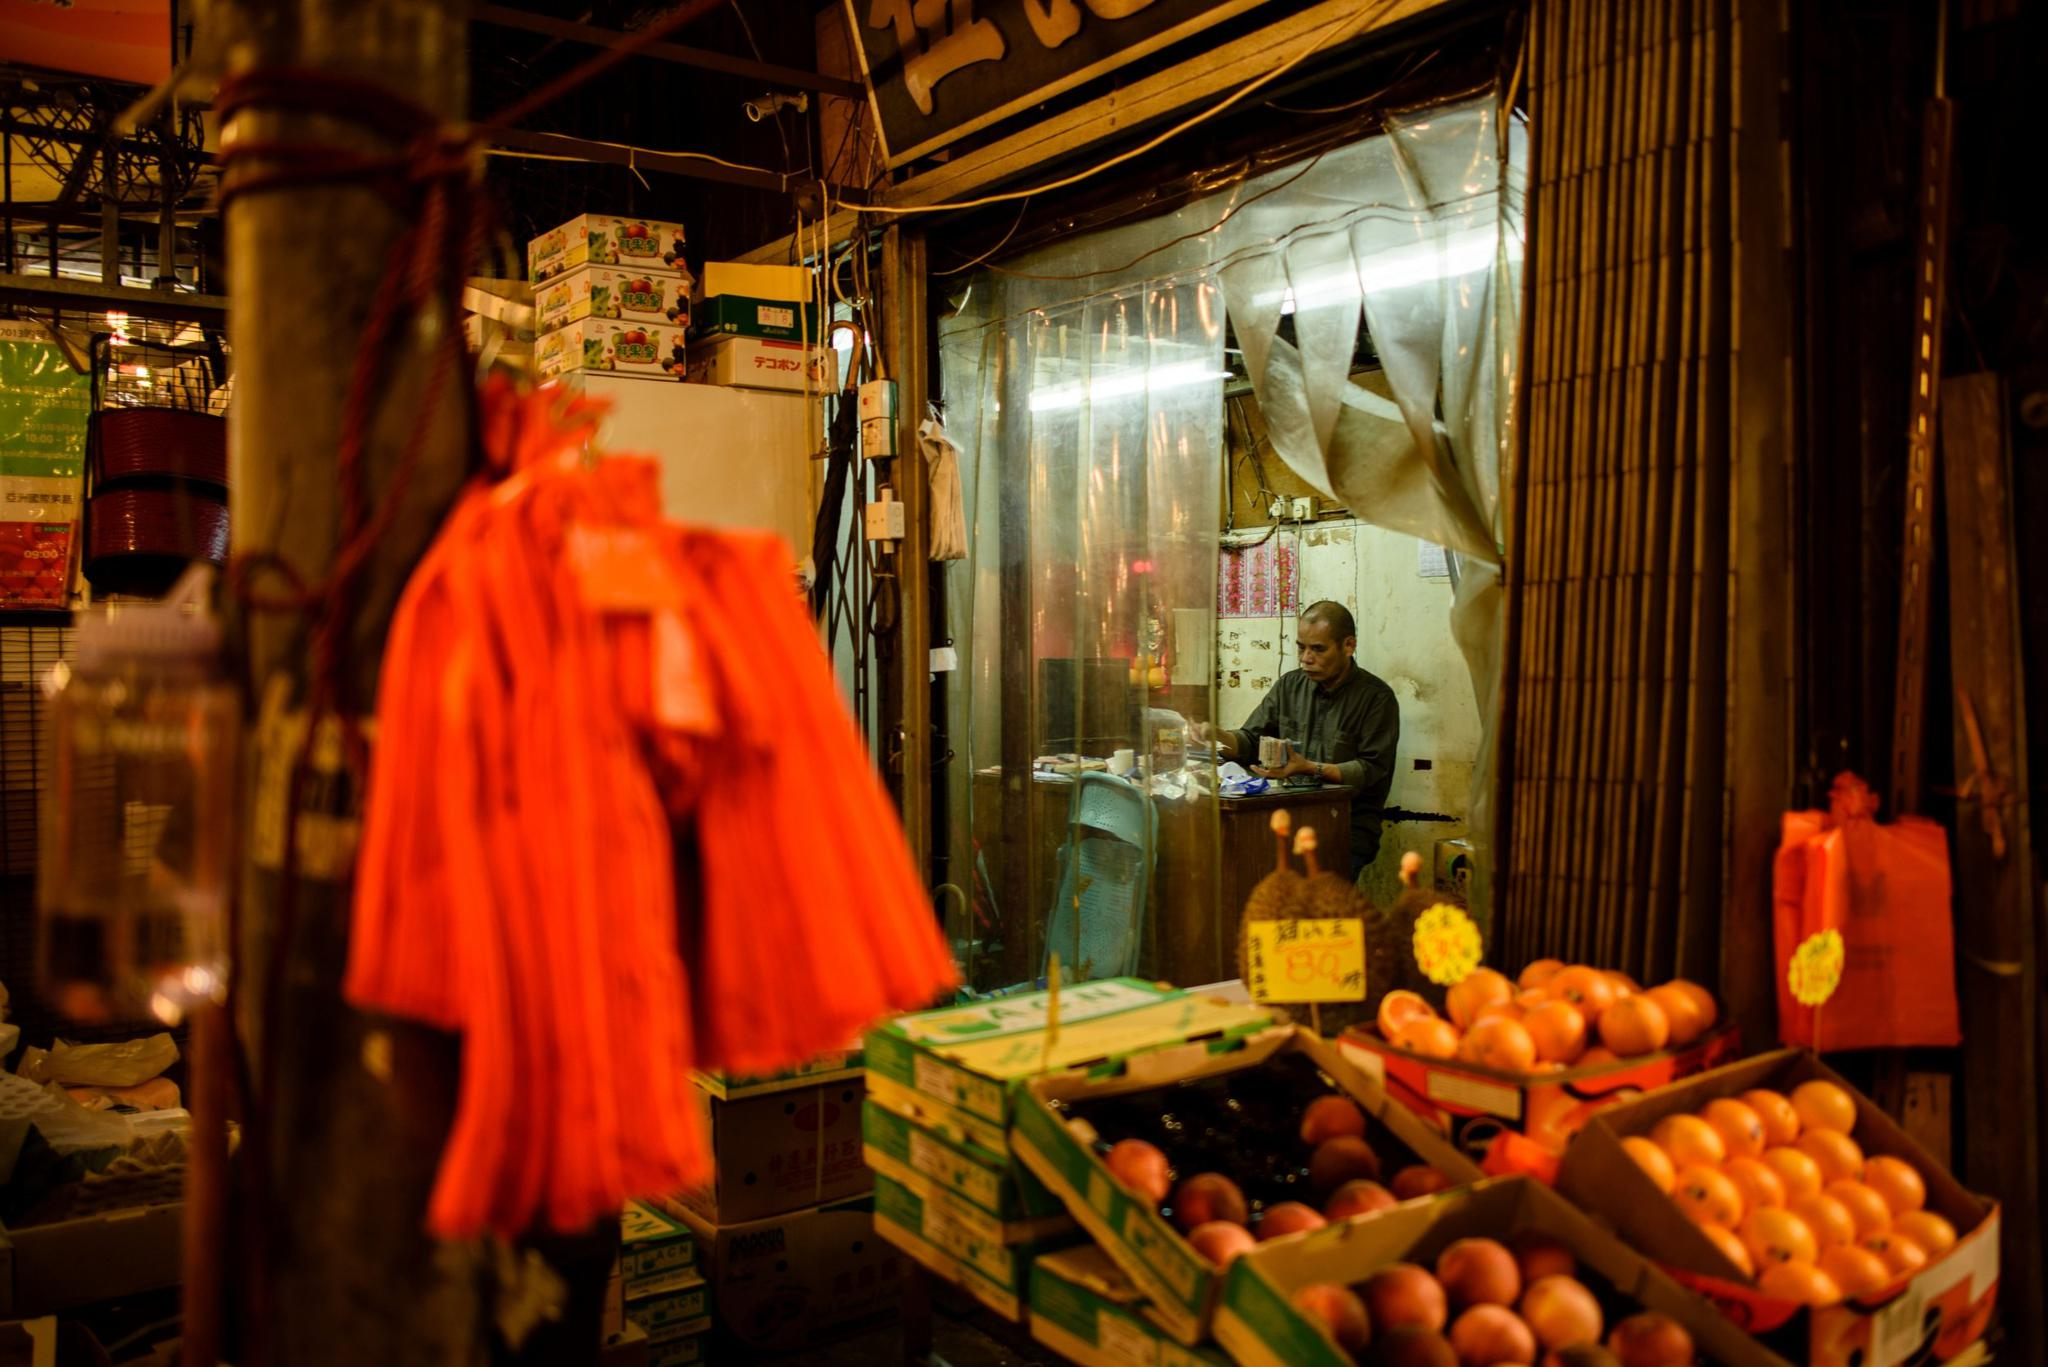 A vendor counts banknotes at the Yau Ma Tei fruit market in the Kowloon district of Hong Kong on March 13, 2017. A new study from the University of Hong Kong suggests that paper money may be a way to monitor the microbes circulating around a city.